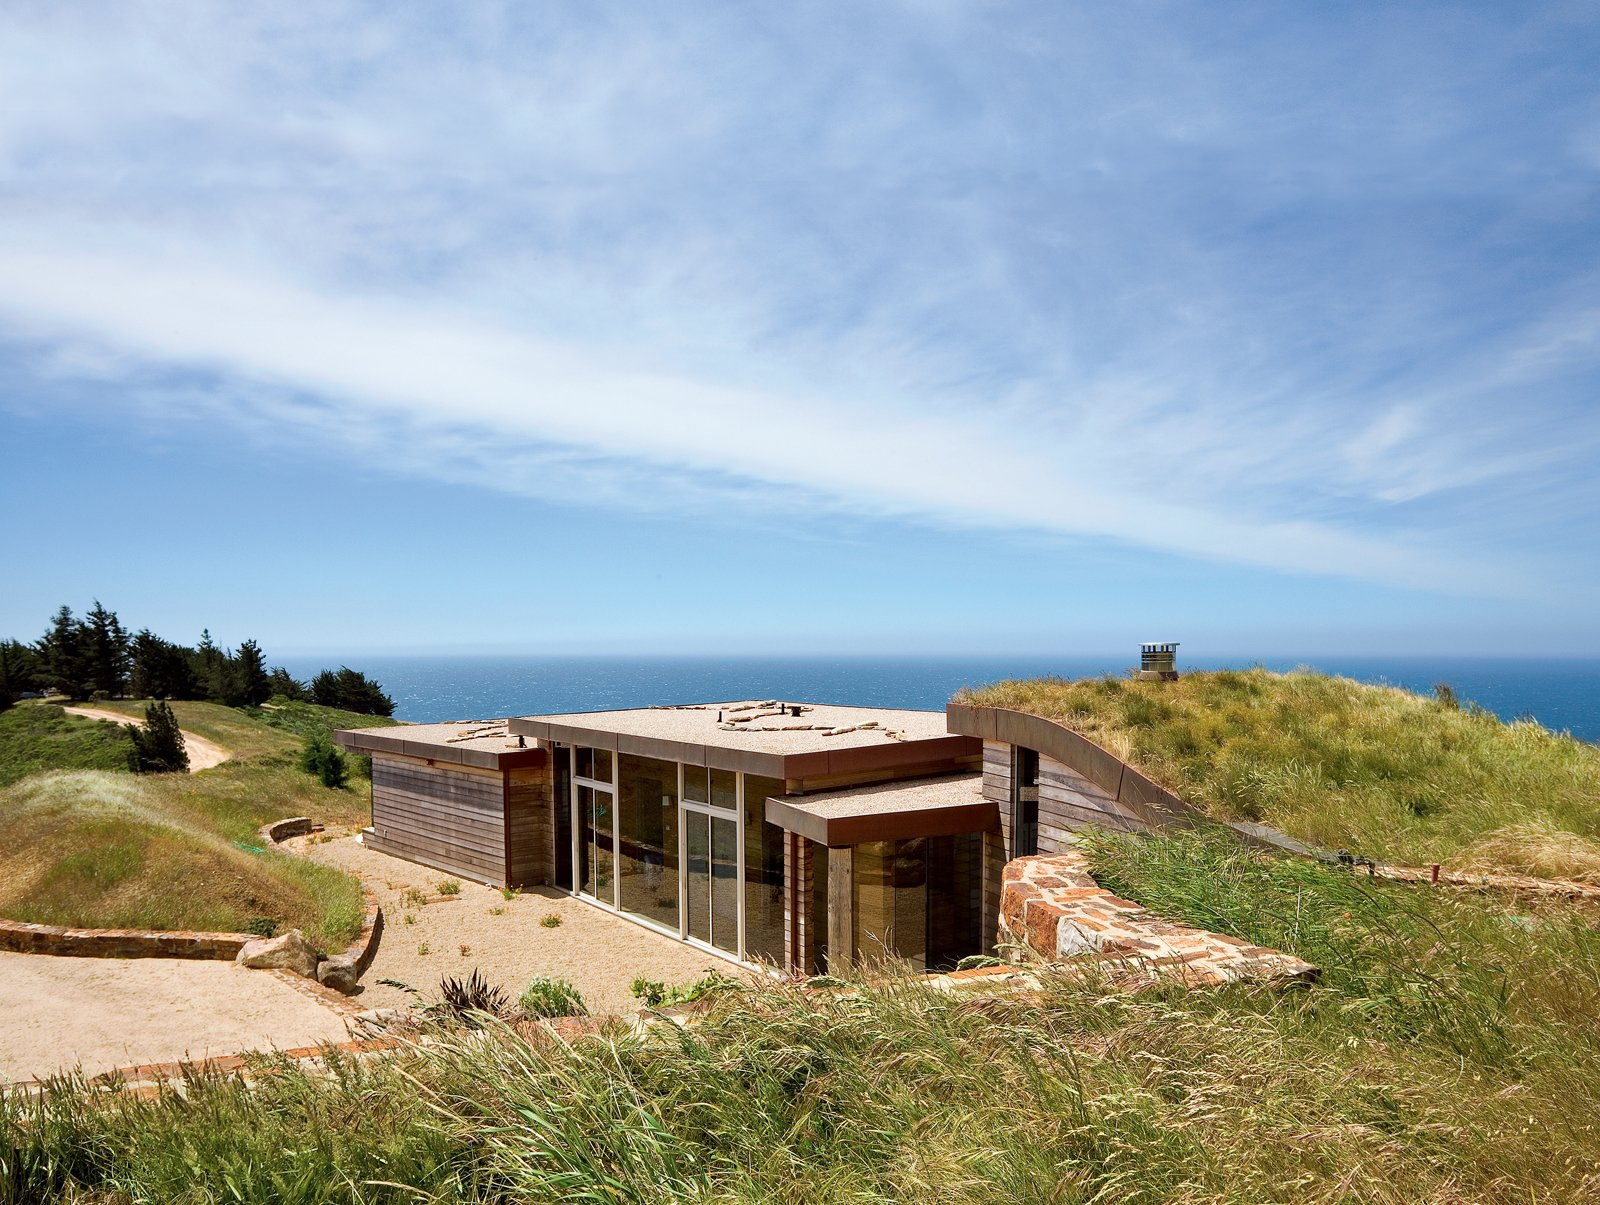 Architect Mary Ann Schicketanz created a 1,900-square-foot home in Big Sur, California, that hugs its hillside site. Big Sur: Going Coastal - Photo 1 of 6